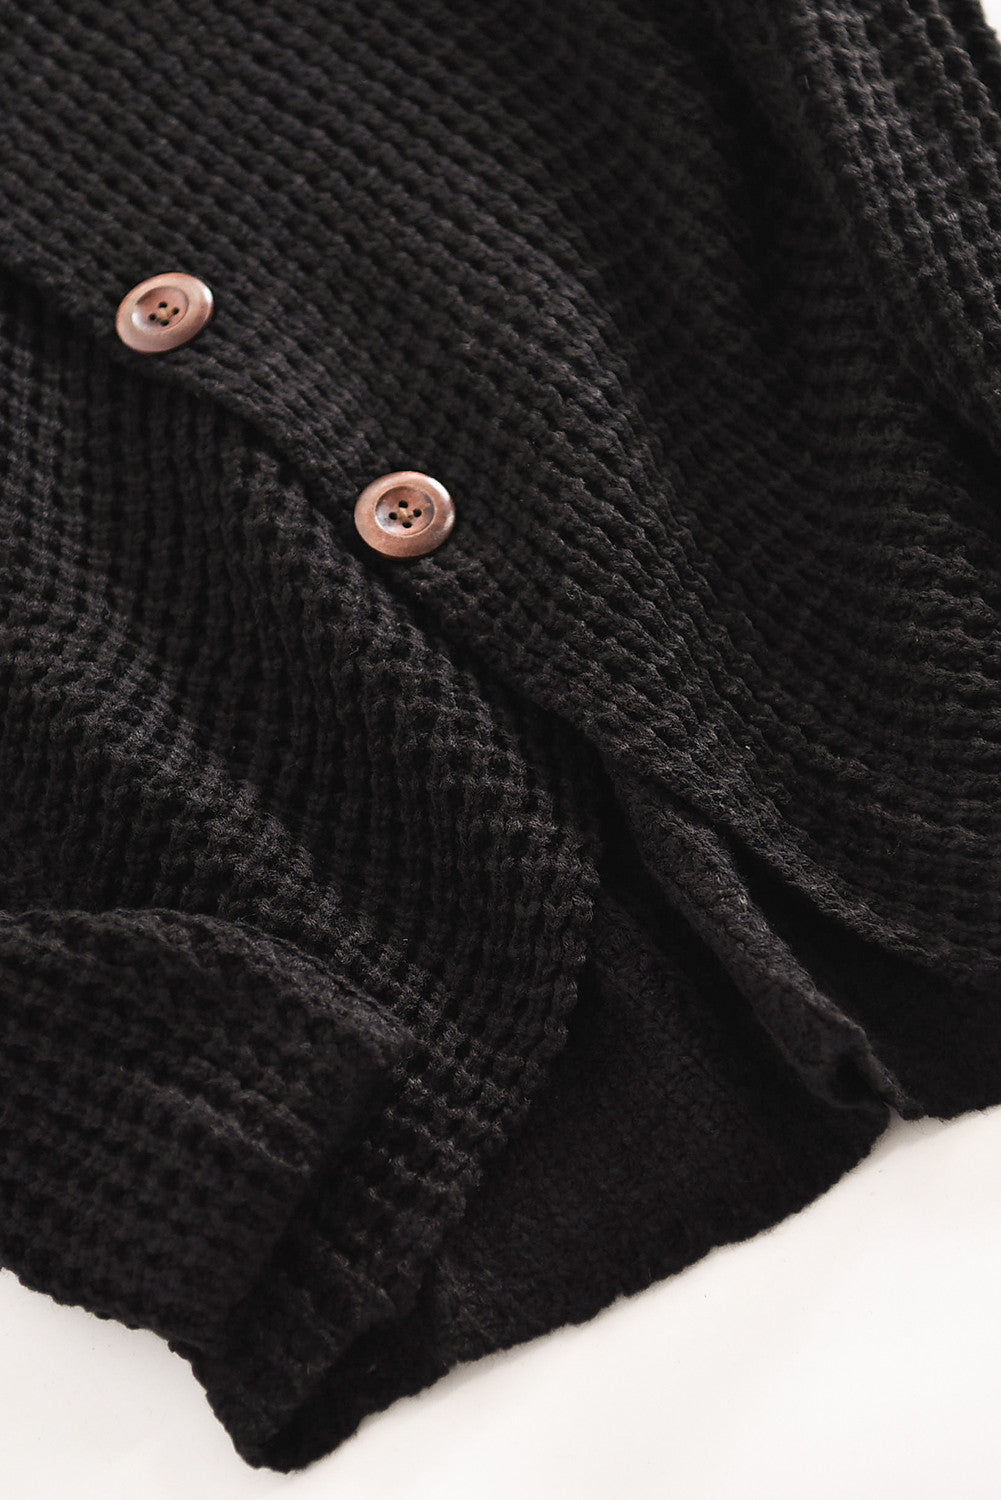 Black Turtleneck Buttoned Sweater